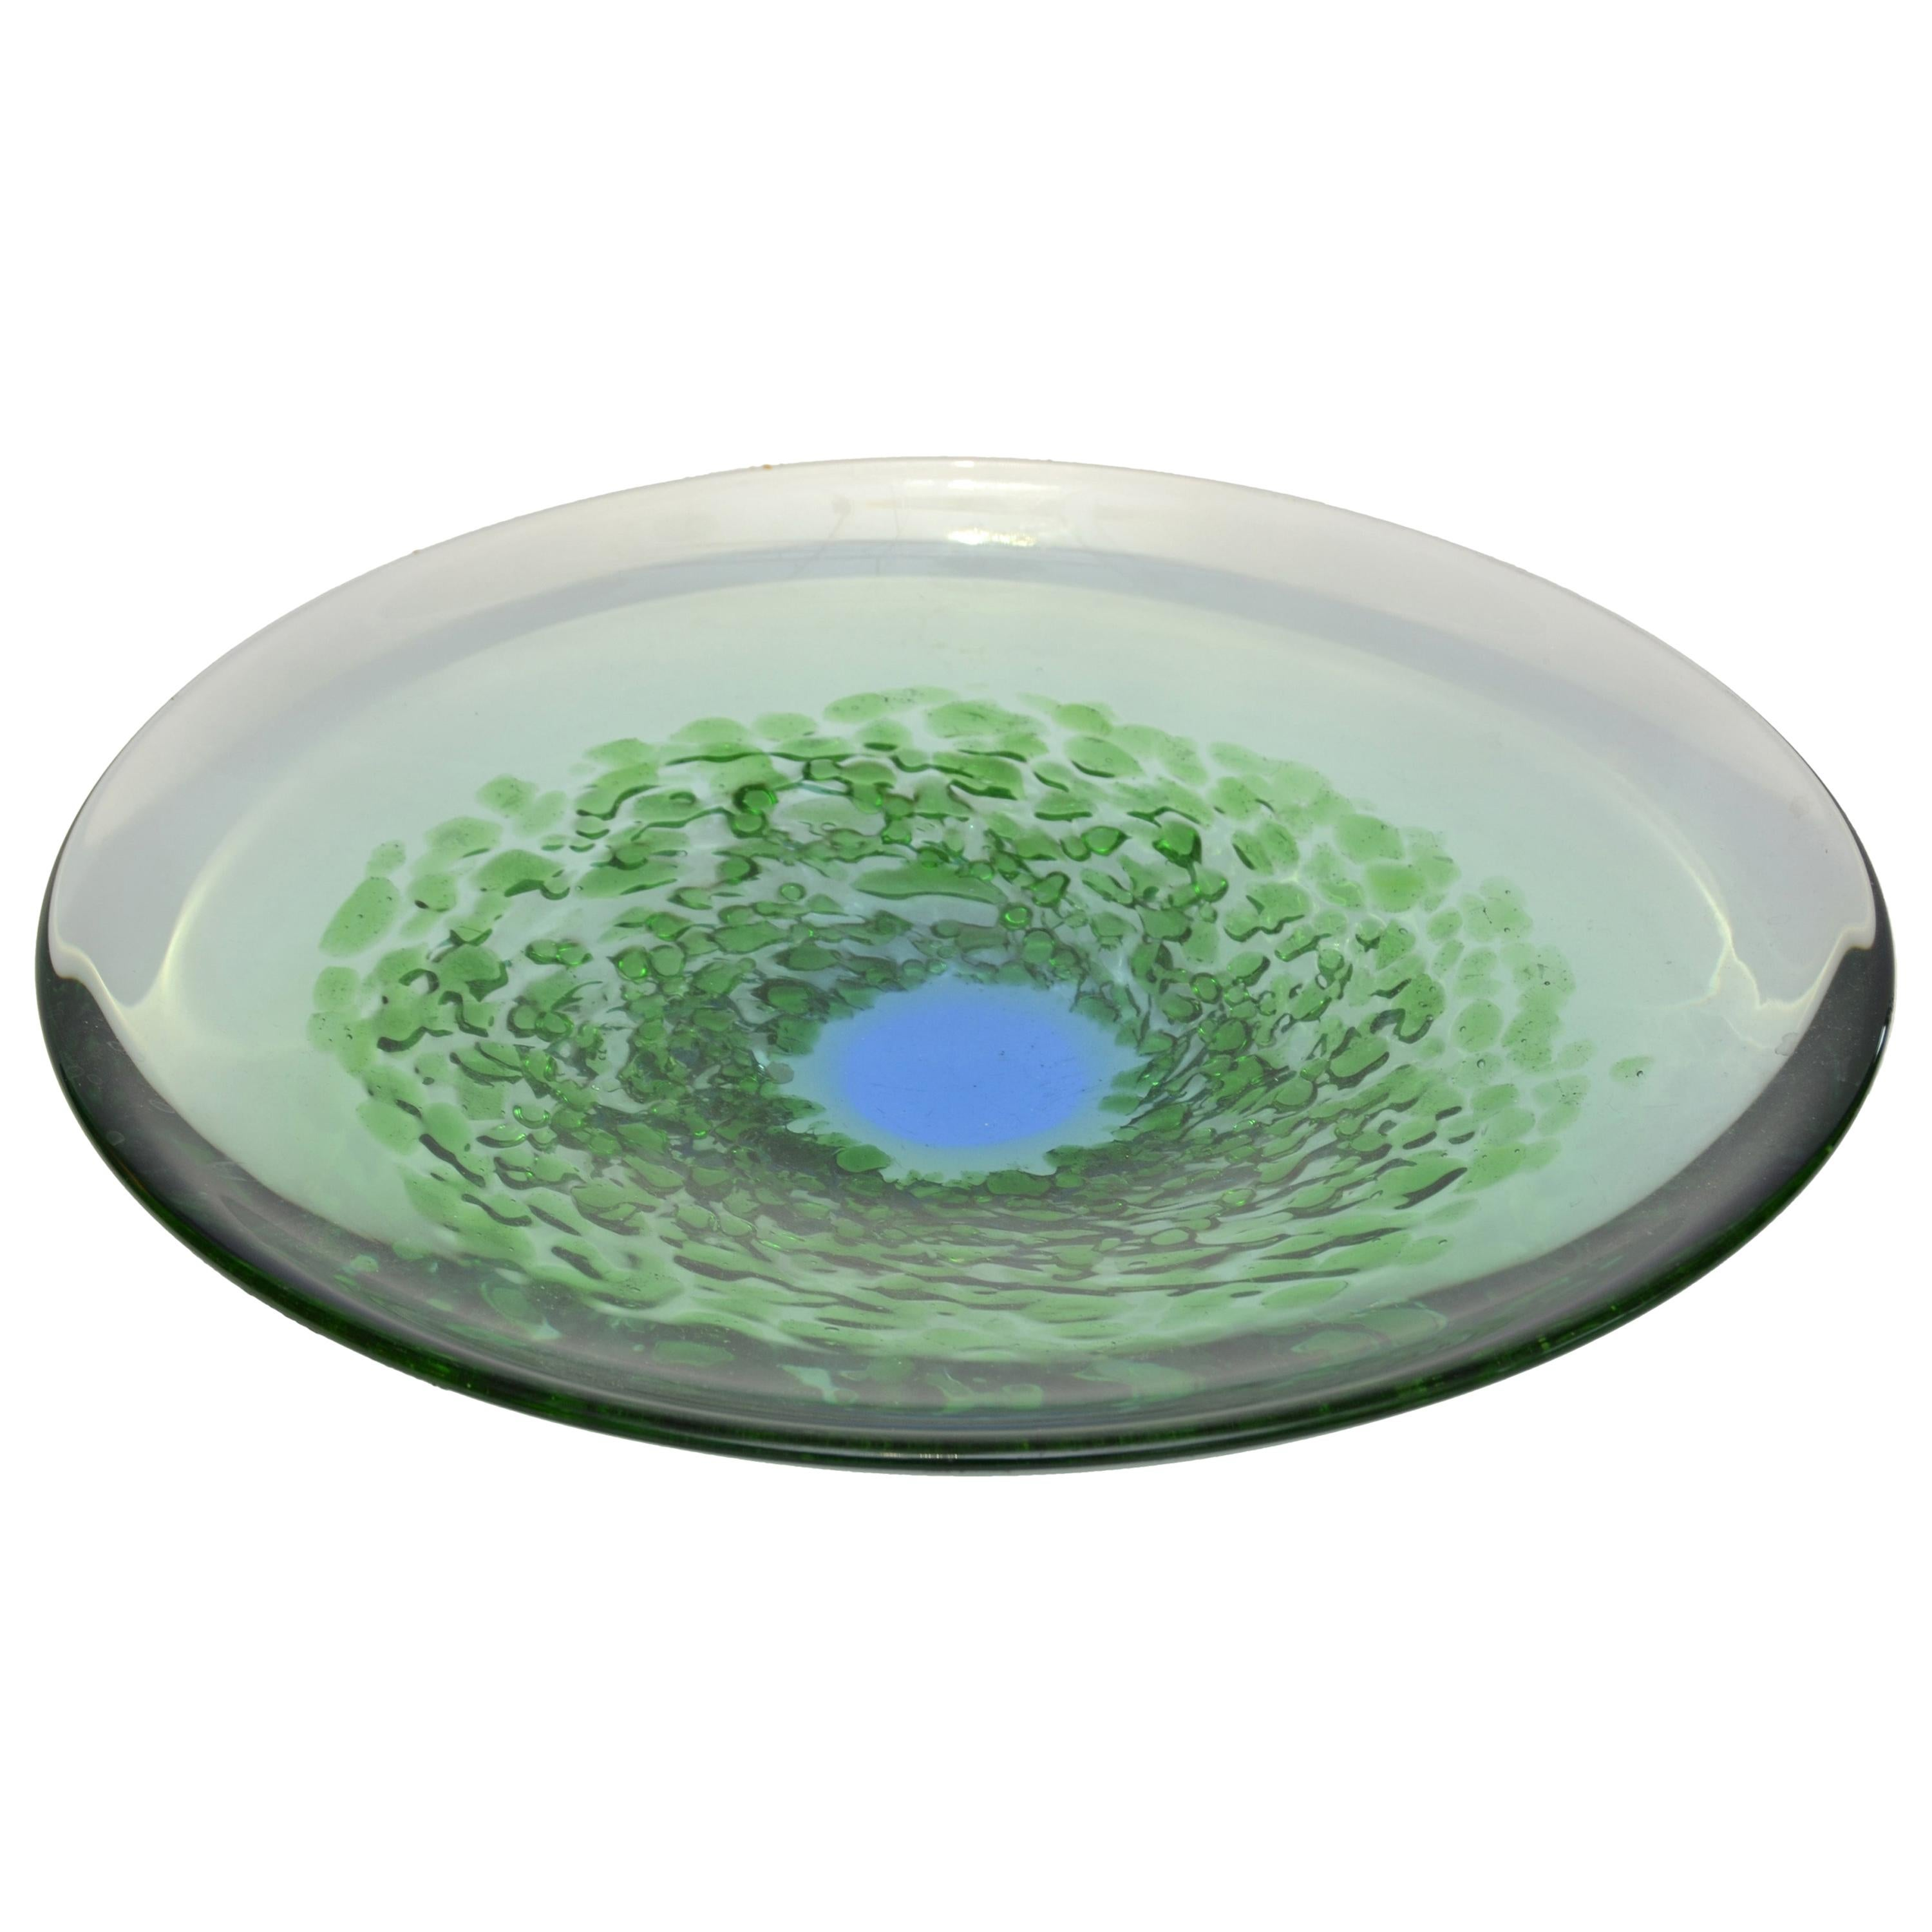 Mid-Century Modern Blown Murano Glass Plate in Green and Blue, Italy